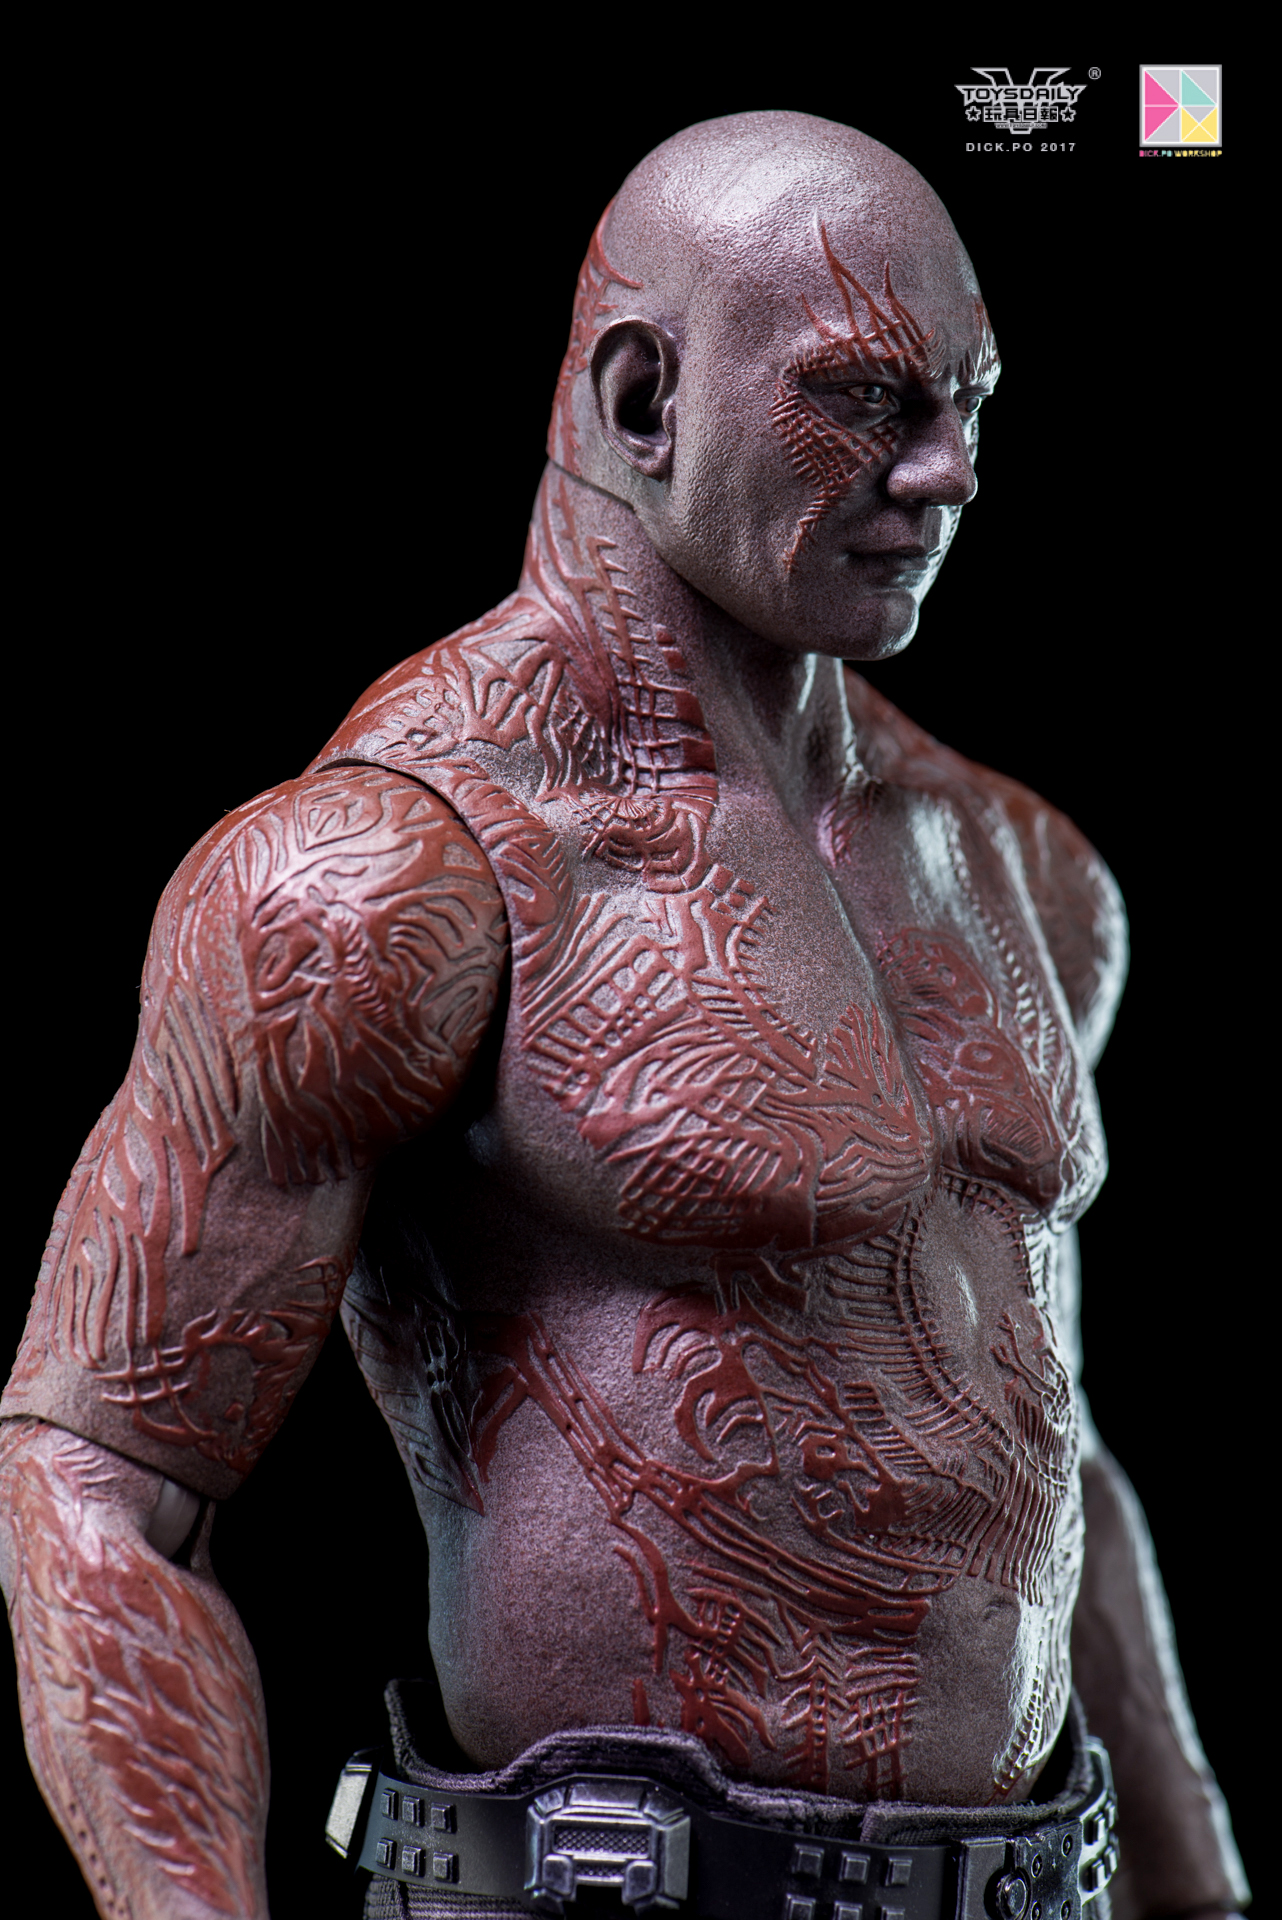 toysdaily_dick.po_Hottoys_DARX-13.jpg